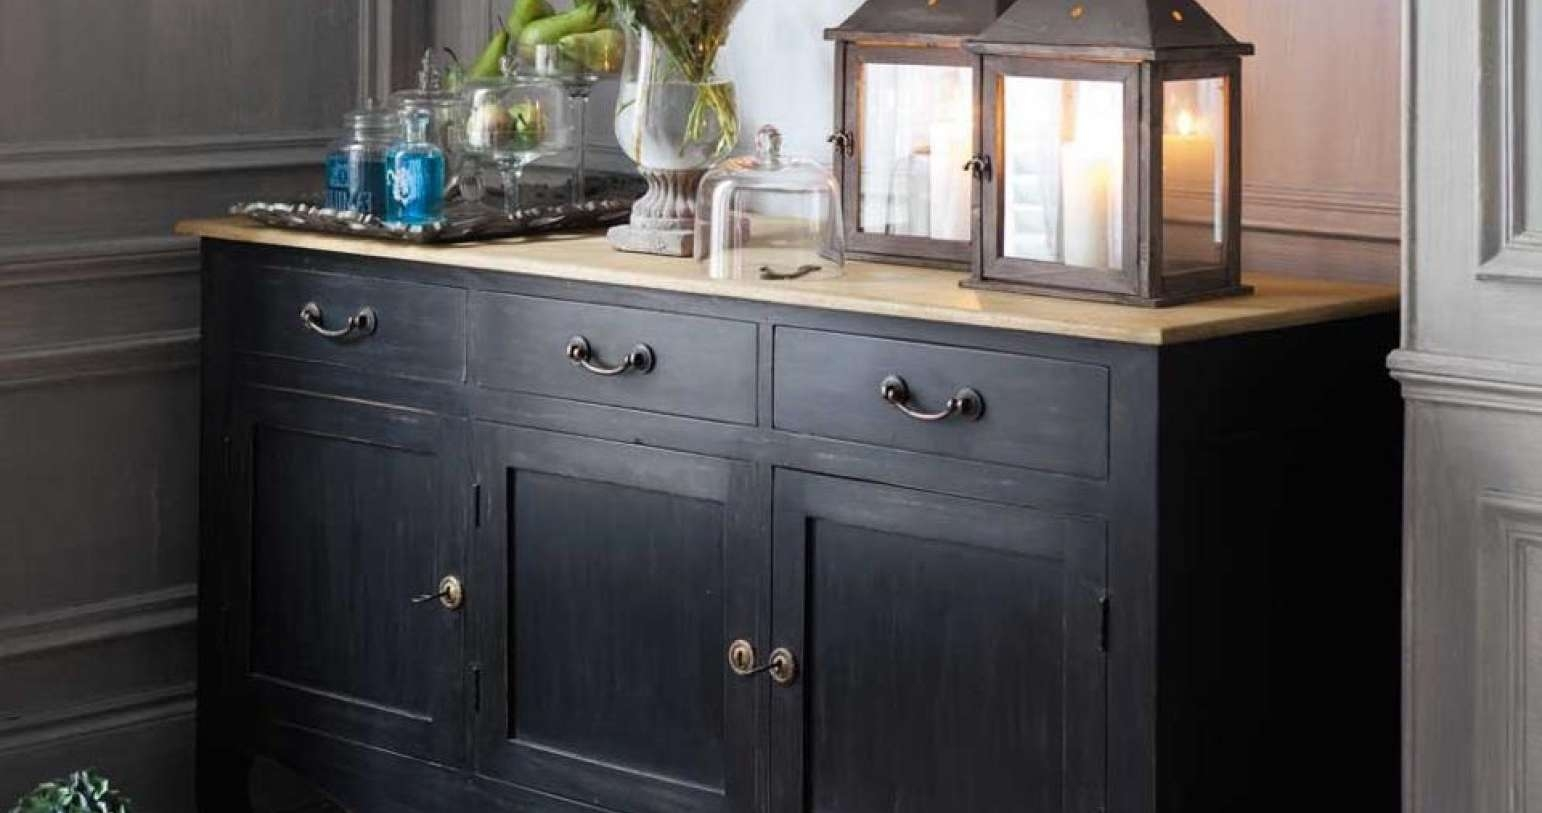 Sideboard : Farmhouse Sideboards Shocking Farmhouse Decor Pertaining To Farmhouse Sideboards (View 11 of 20)